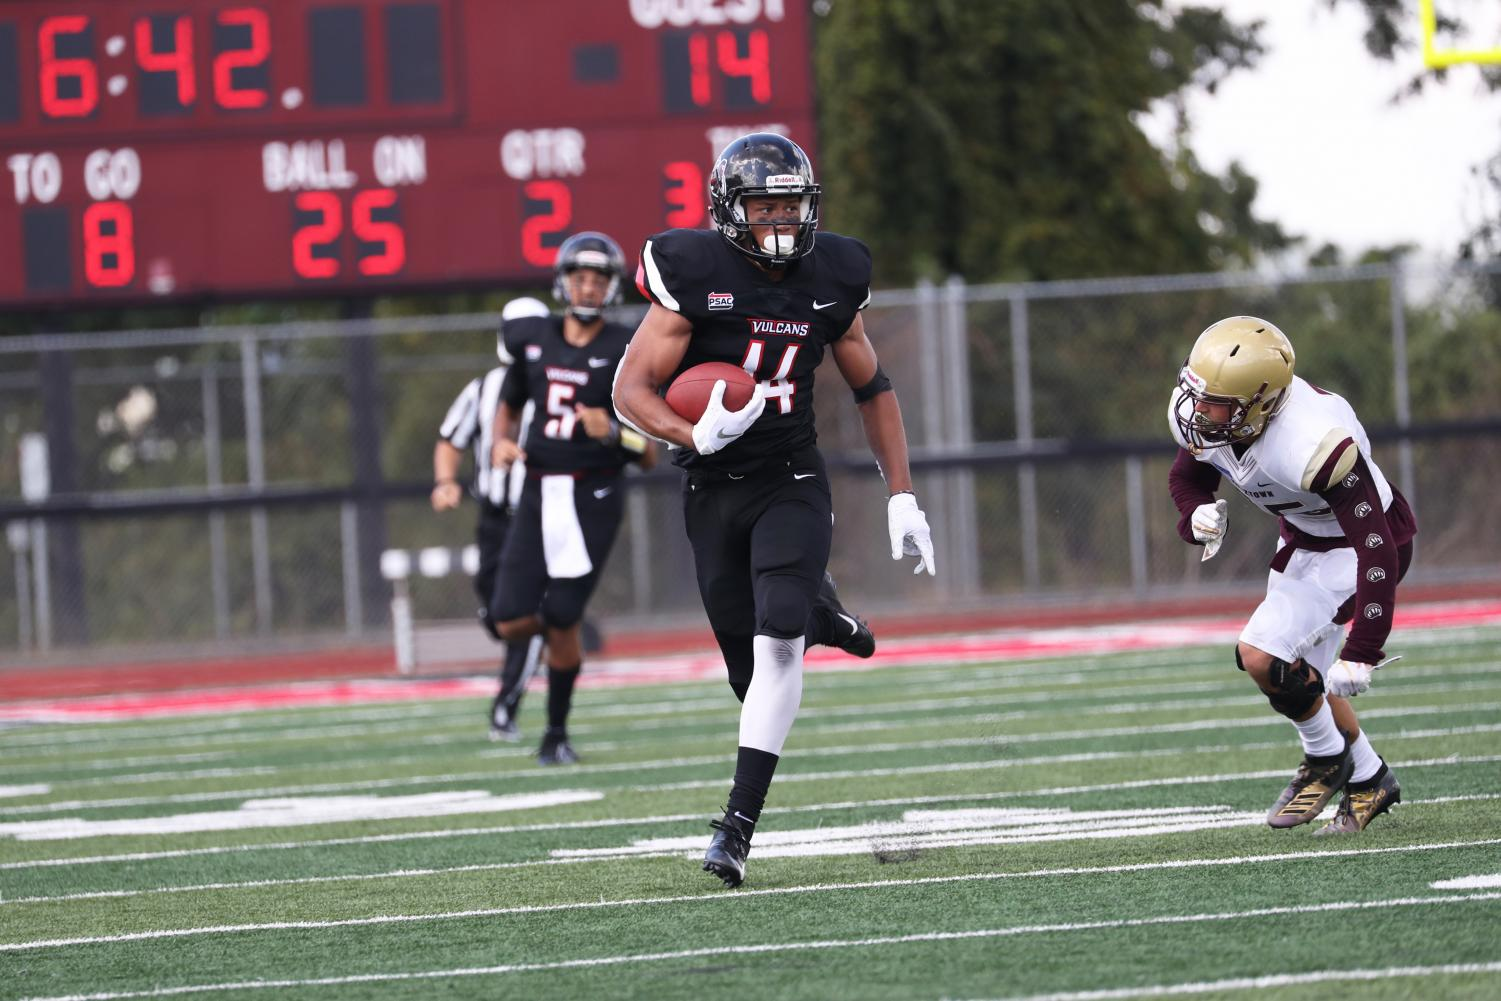 Cal U senior wide receiver Jordan Dandridge led all players with 88 receiving yards on five catches during the football game versus Kutztown University at Adamson Stadium on Sept. 14, 2019